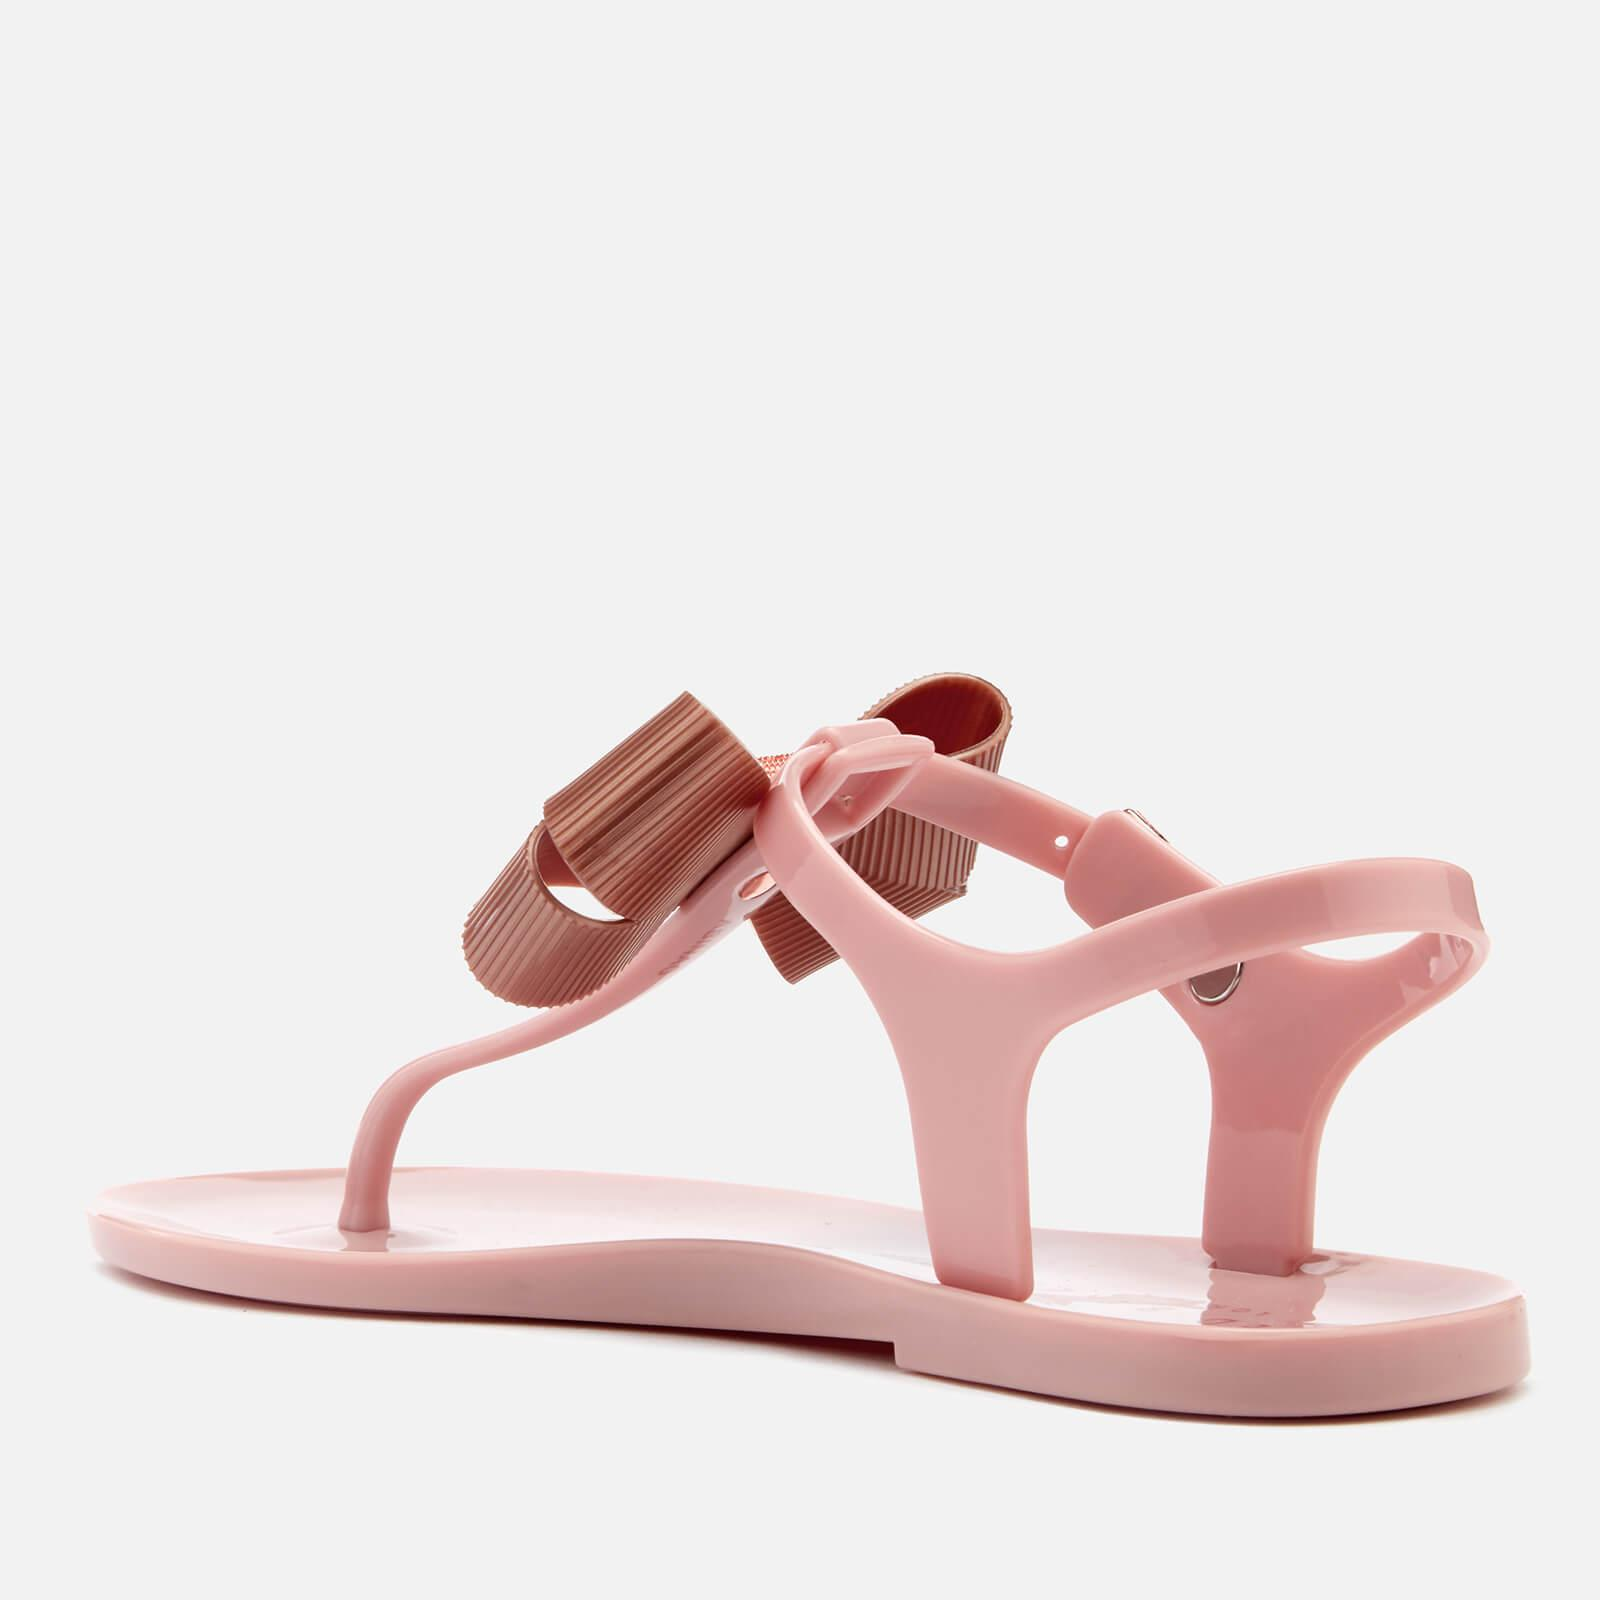 883c1886c55aeb Lyst - Ted Baker Camaril Toe Post Sandals in Pink